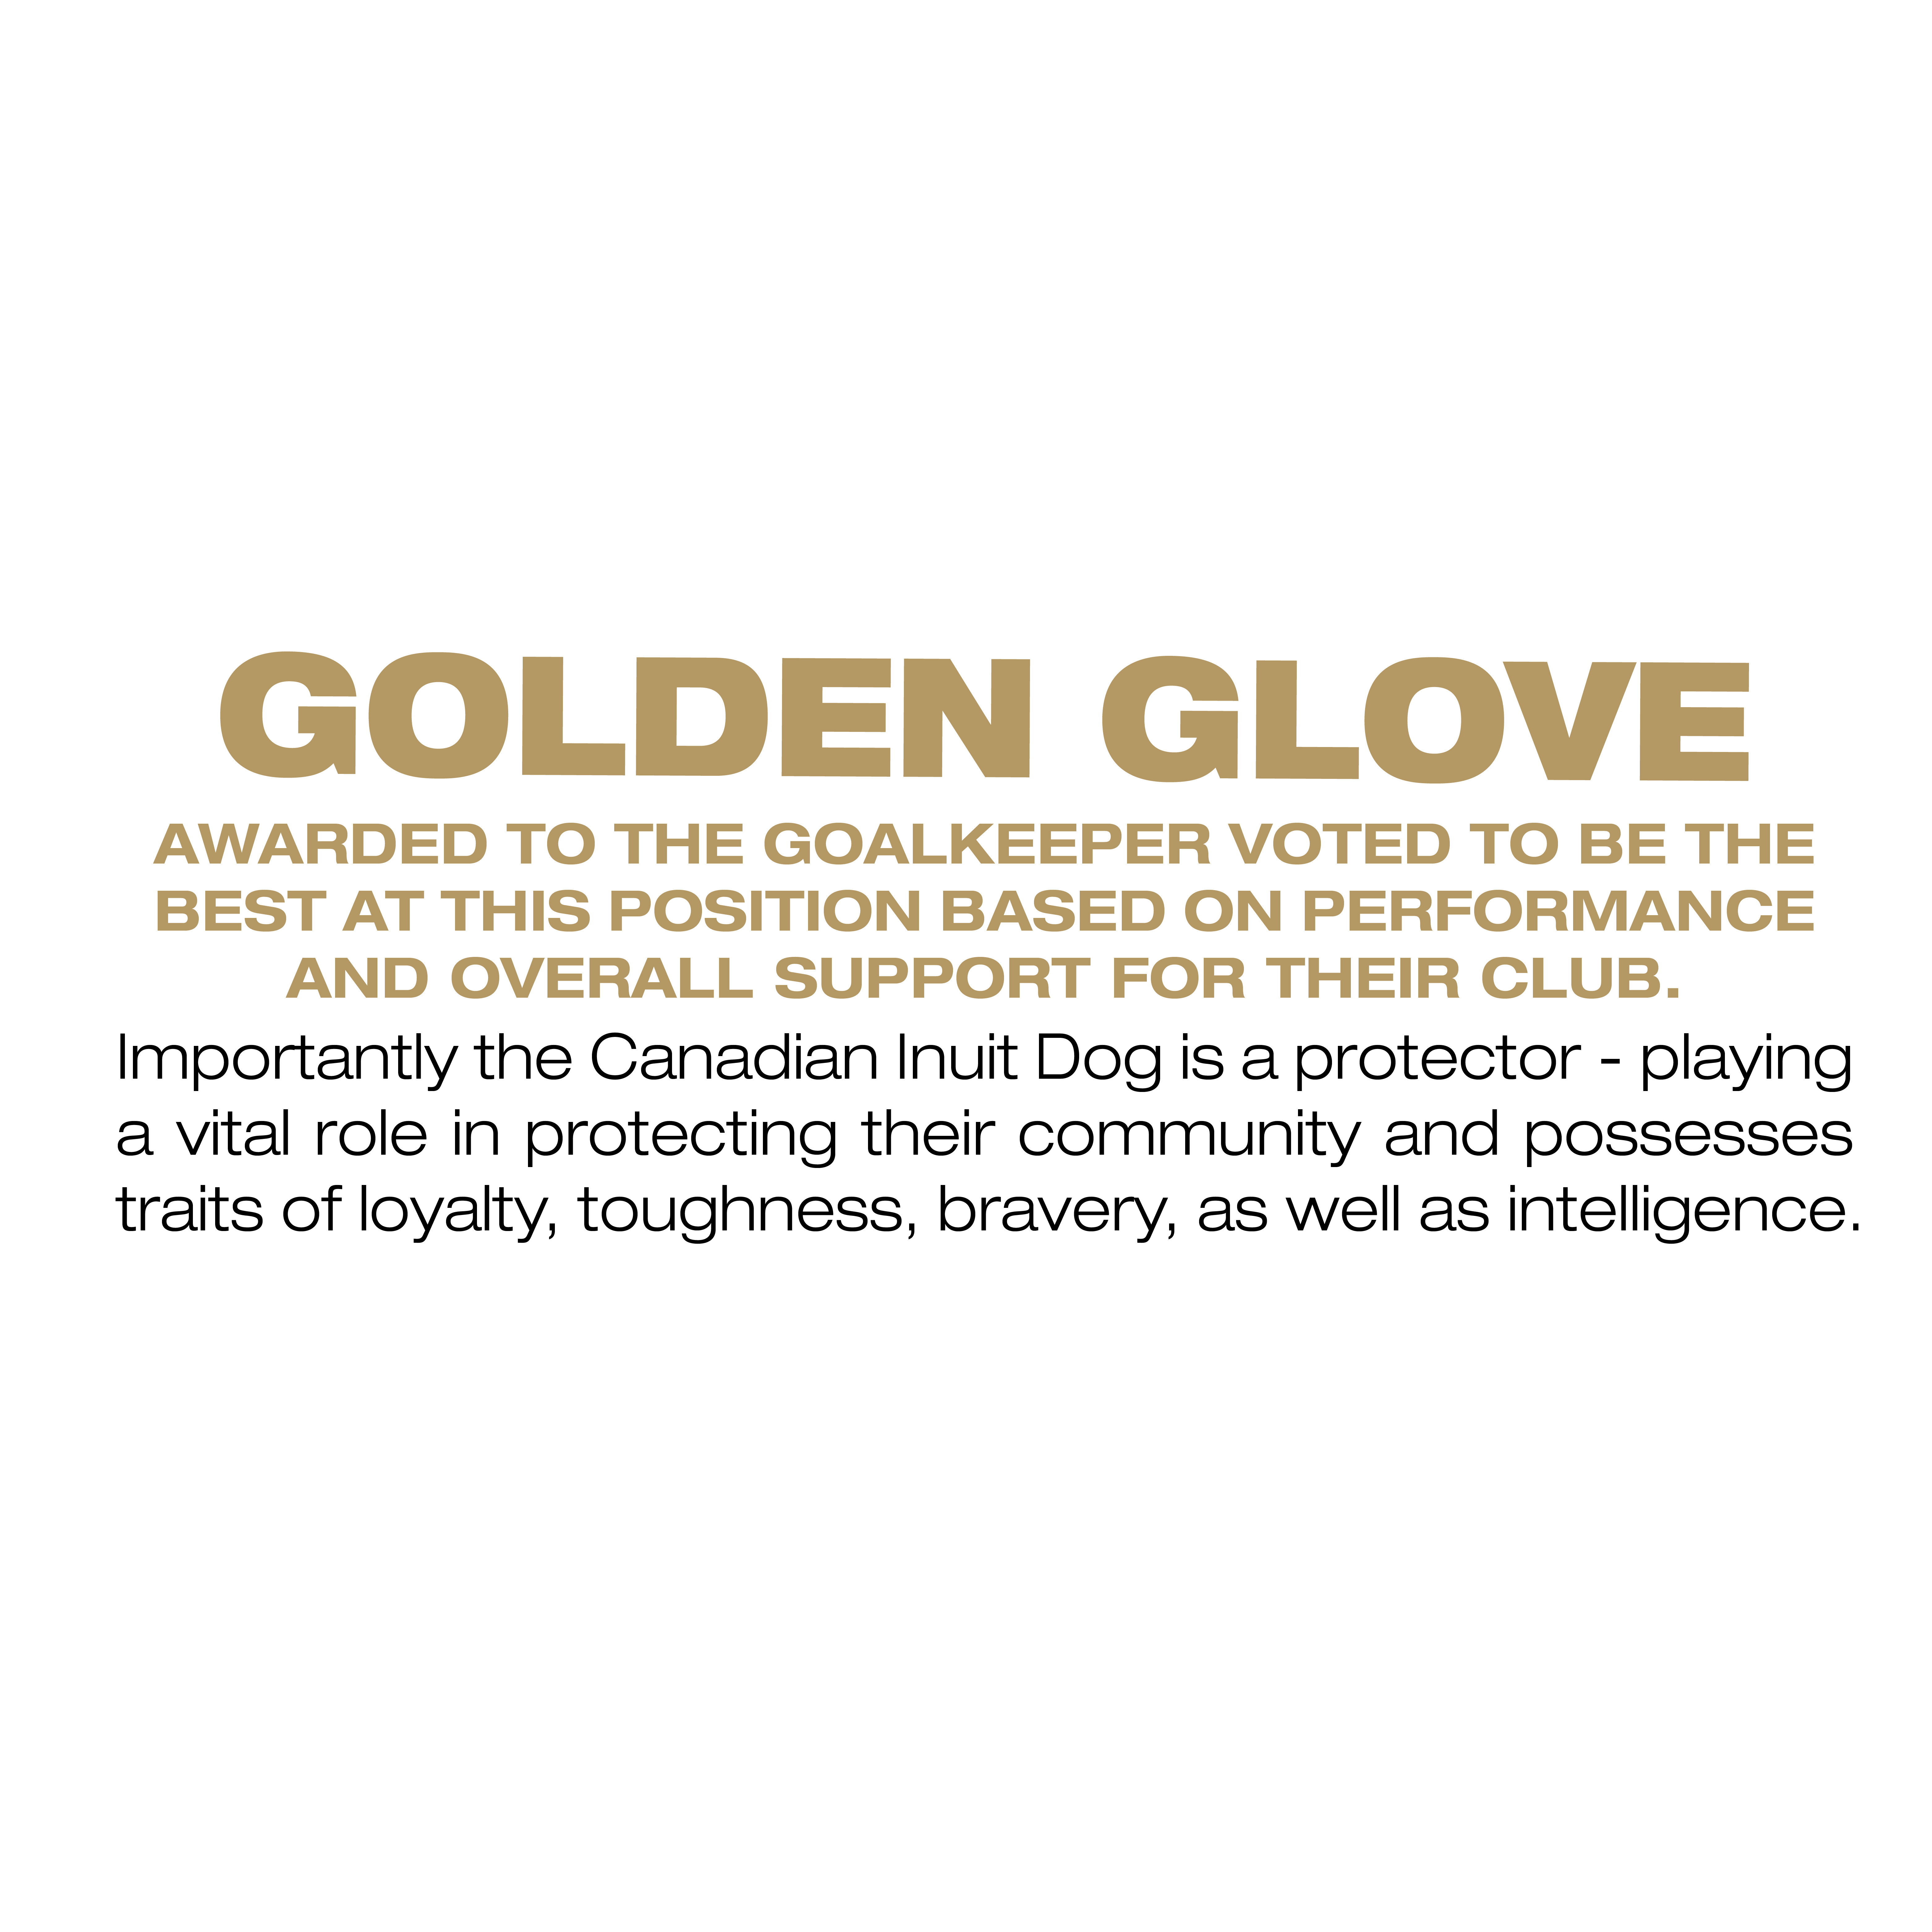 Golden Glove-01